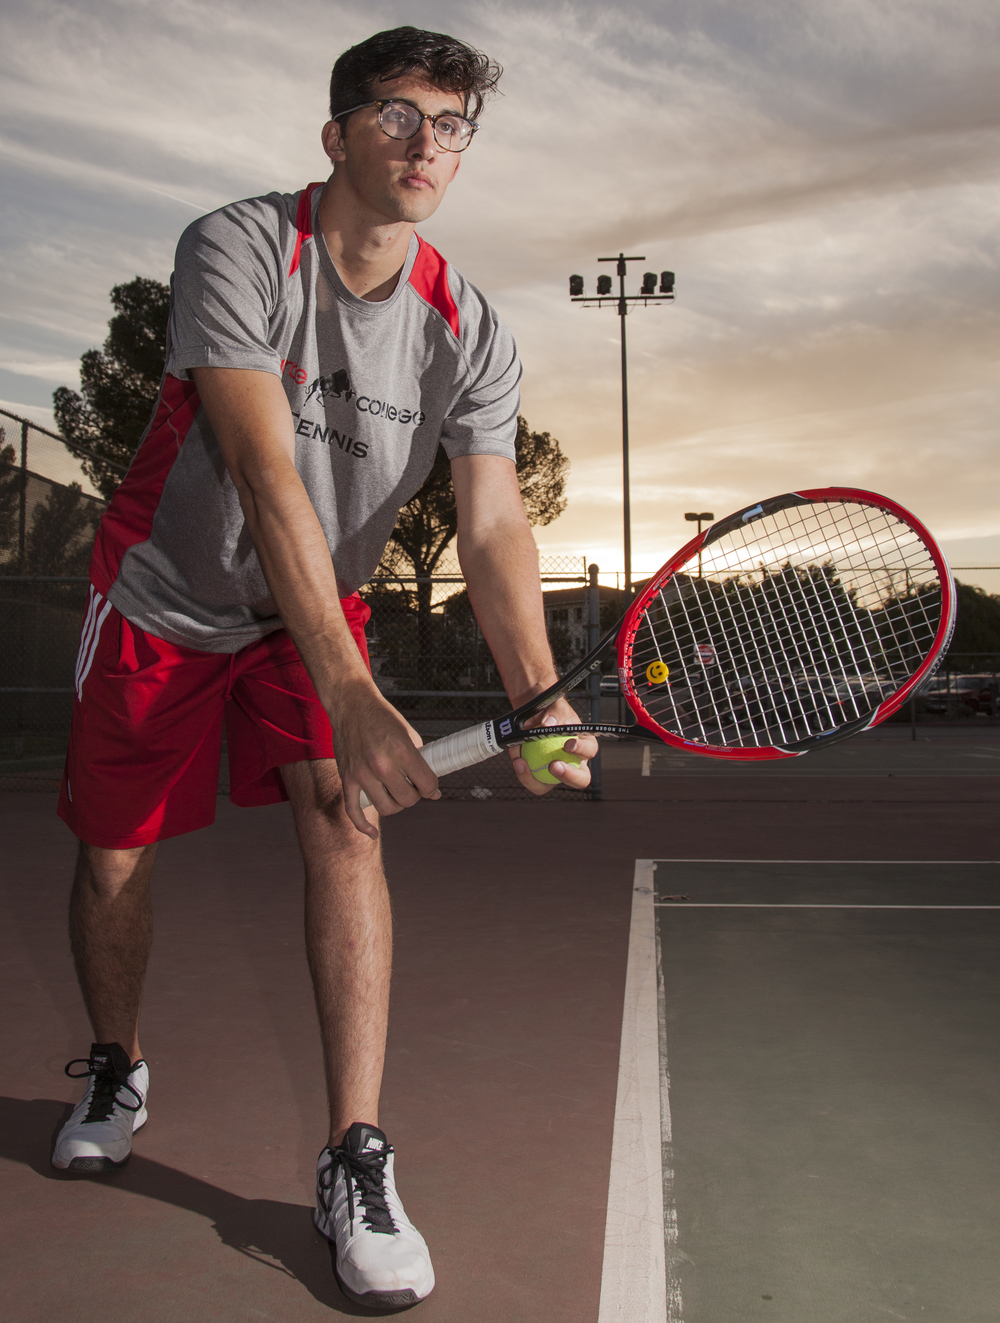 """""""He stood by me every single day motivating me that I could do it and I will do it because he's there,"""" said Anthony Avakian, who was in a car accident that left him in a coma two years ago. Avakian now plays tennis for Pierce."""